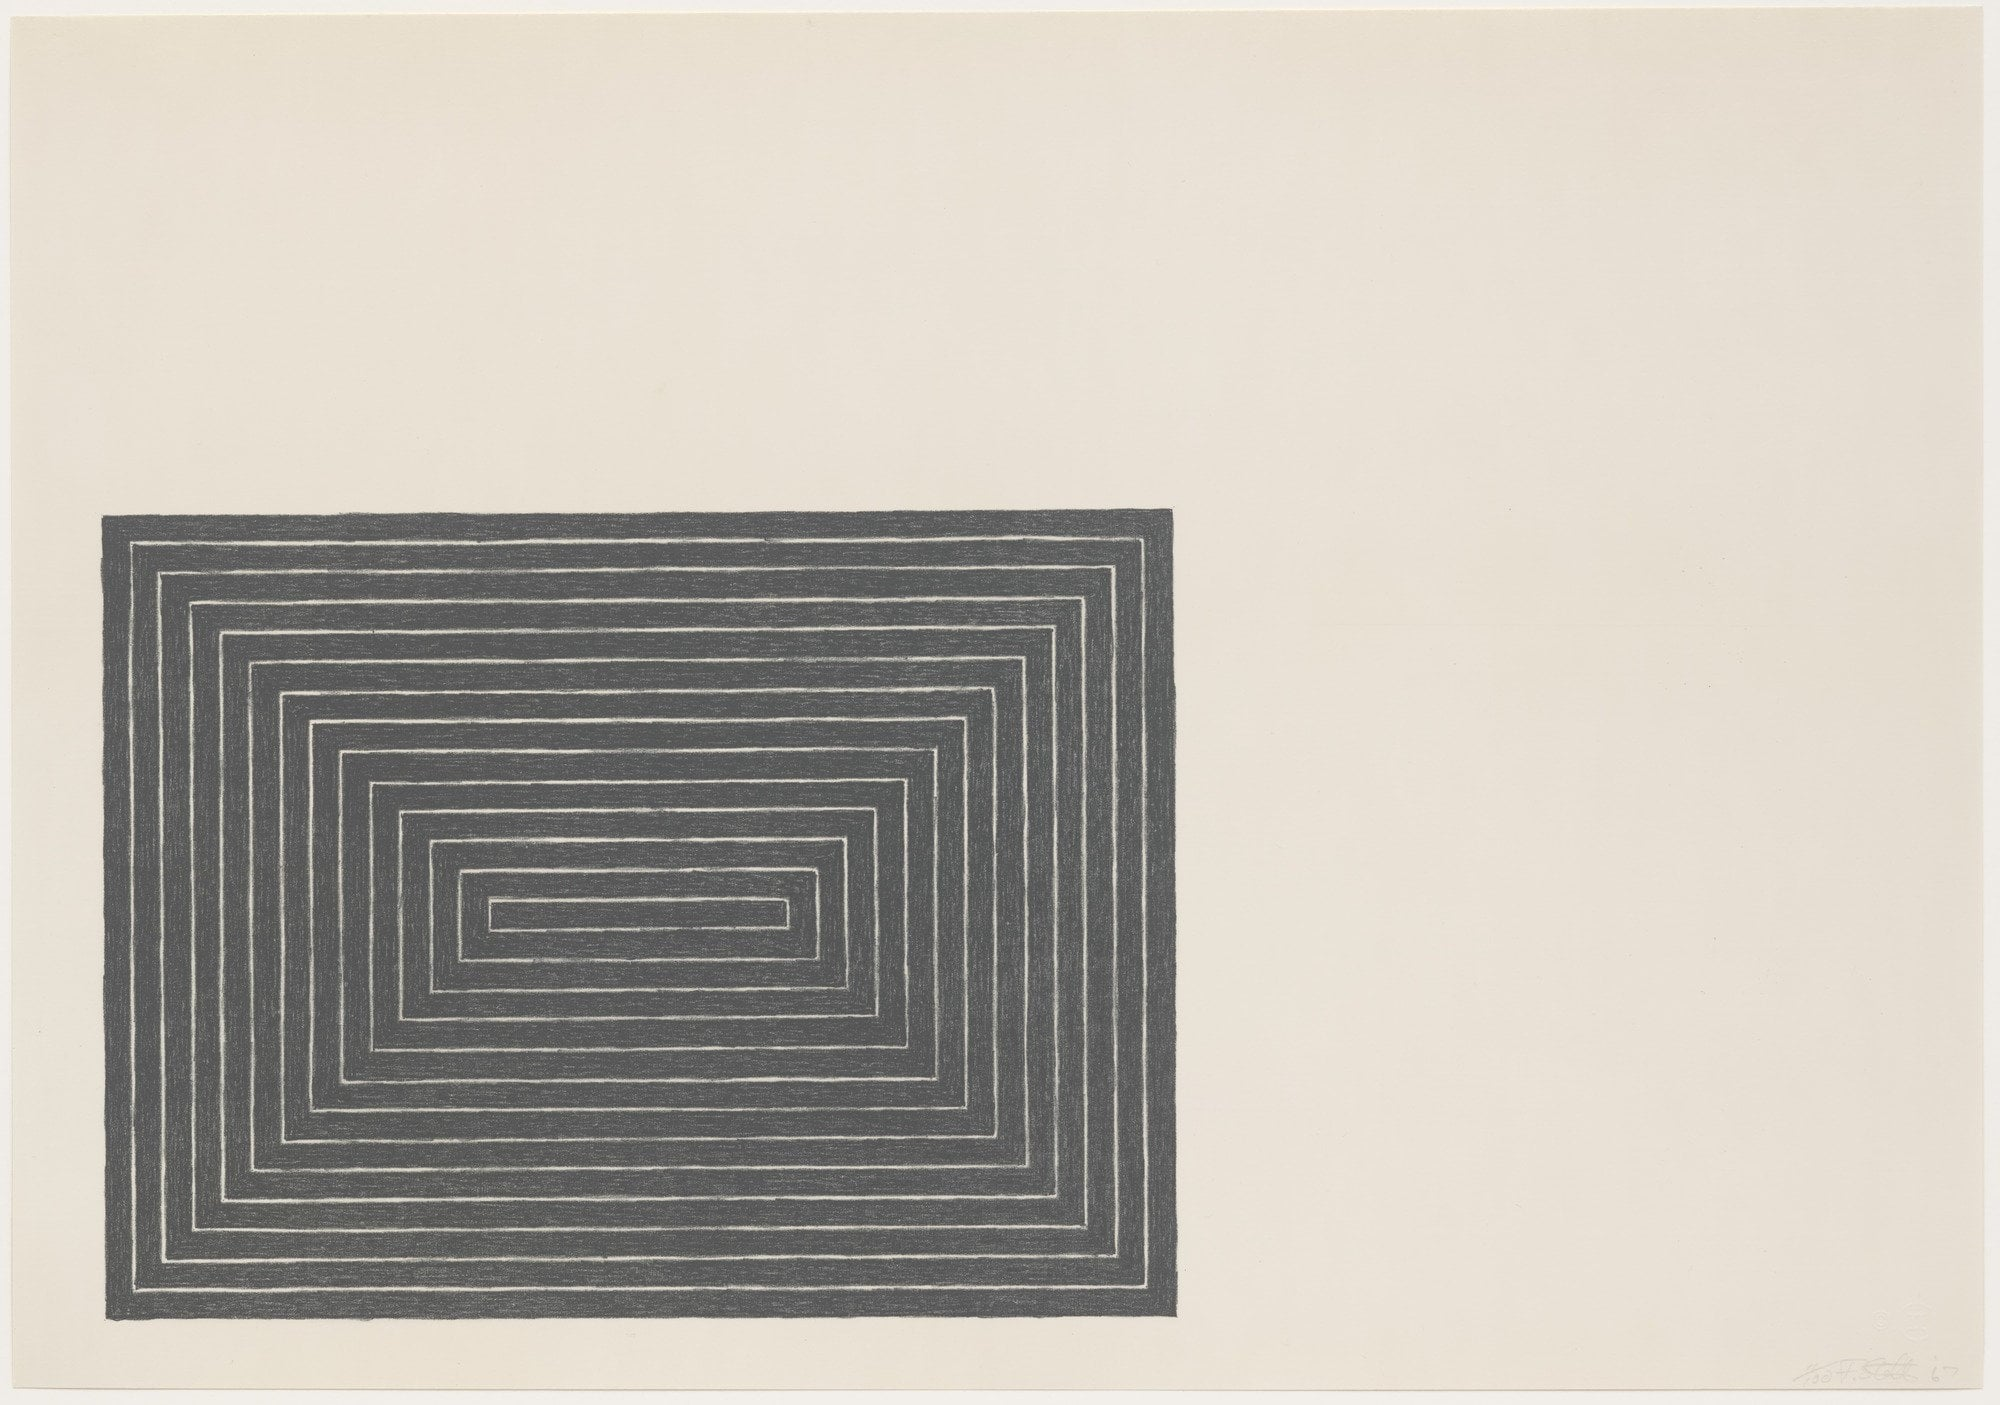 Frank Stella ,  Tomlinson Court Park from Black Series I  1967